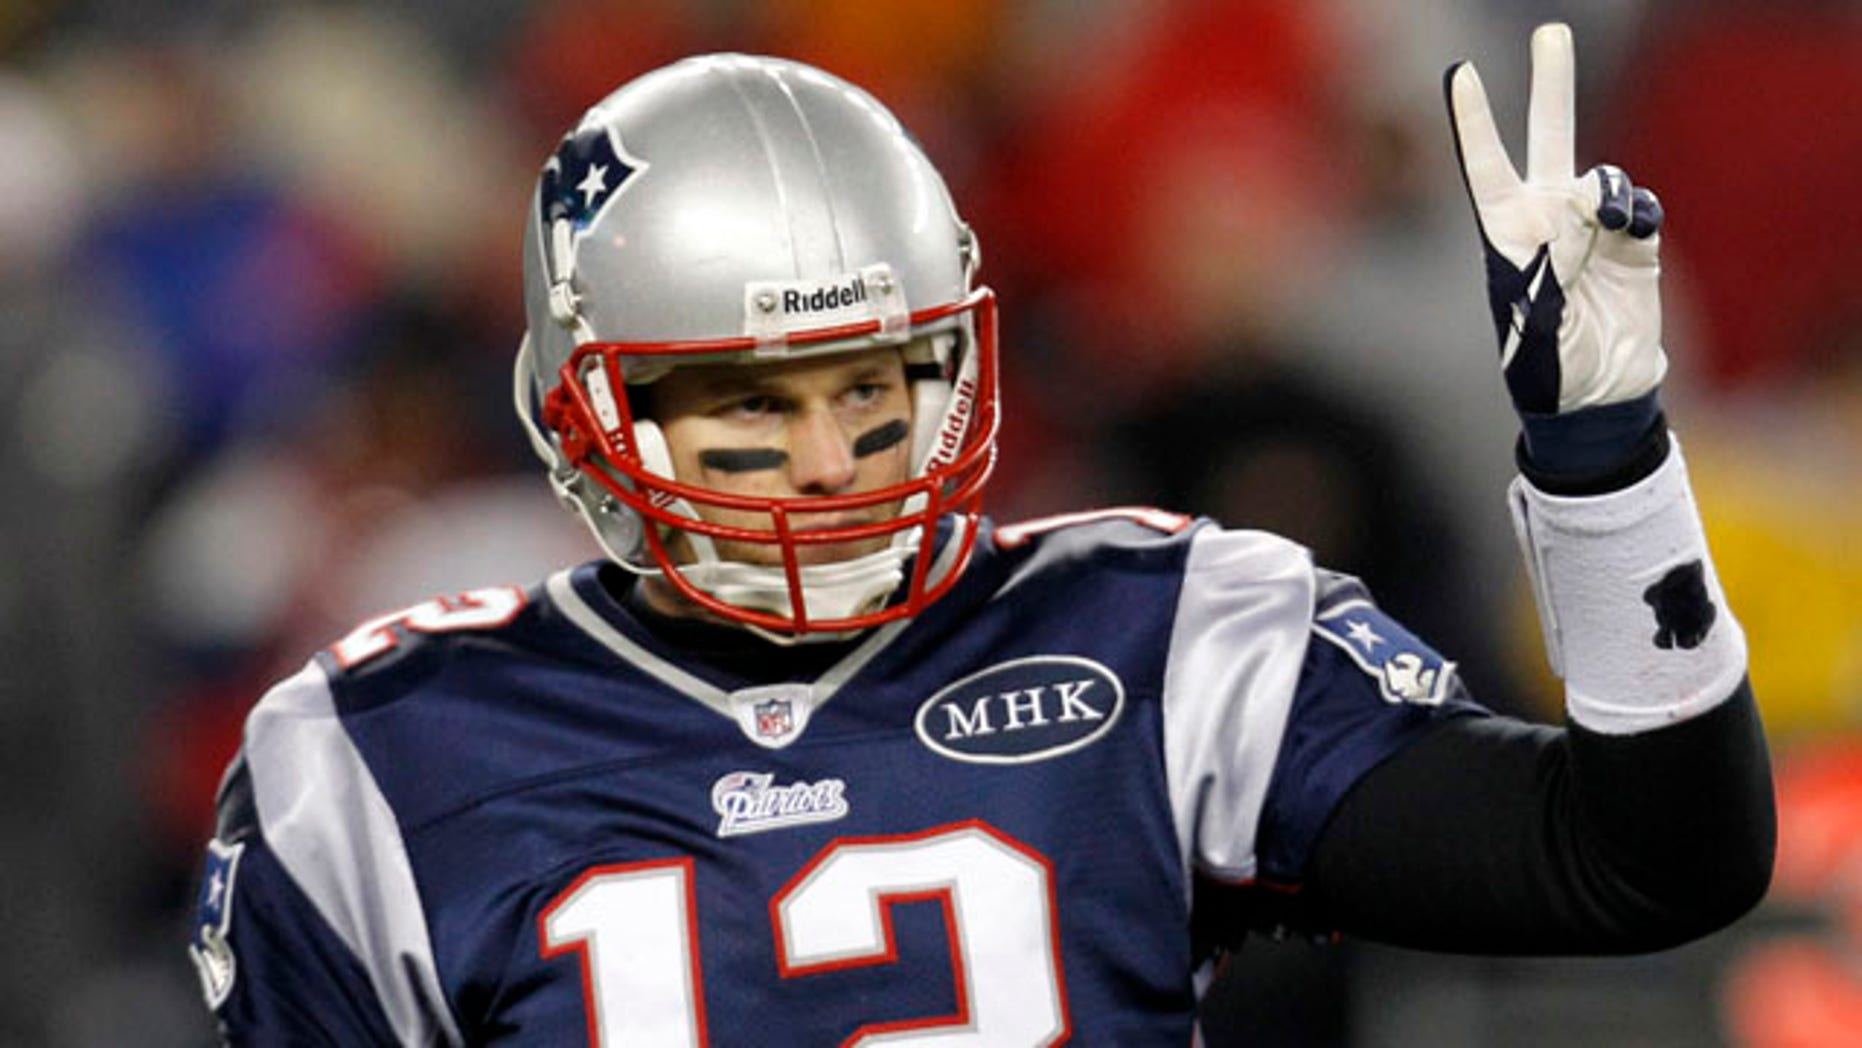 New England Patriots quarterback Tom Brady signals to his bench during the second half of an NFL divisional playoff football game against the Denver Broncos Saturday, Jan. 14, 2012, in Foxborough, Mass. (AP Photo/Elise Amendola)